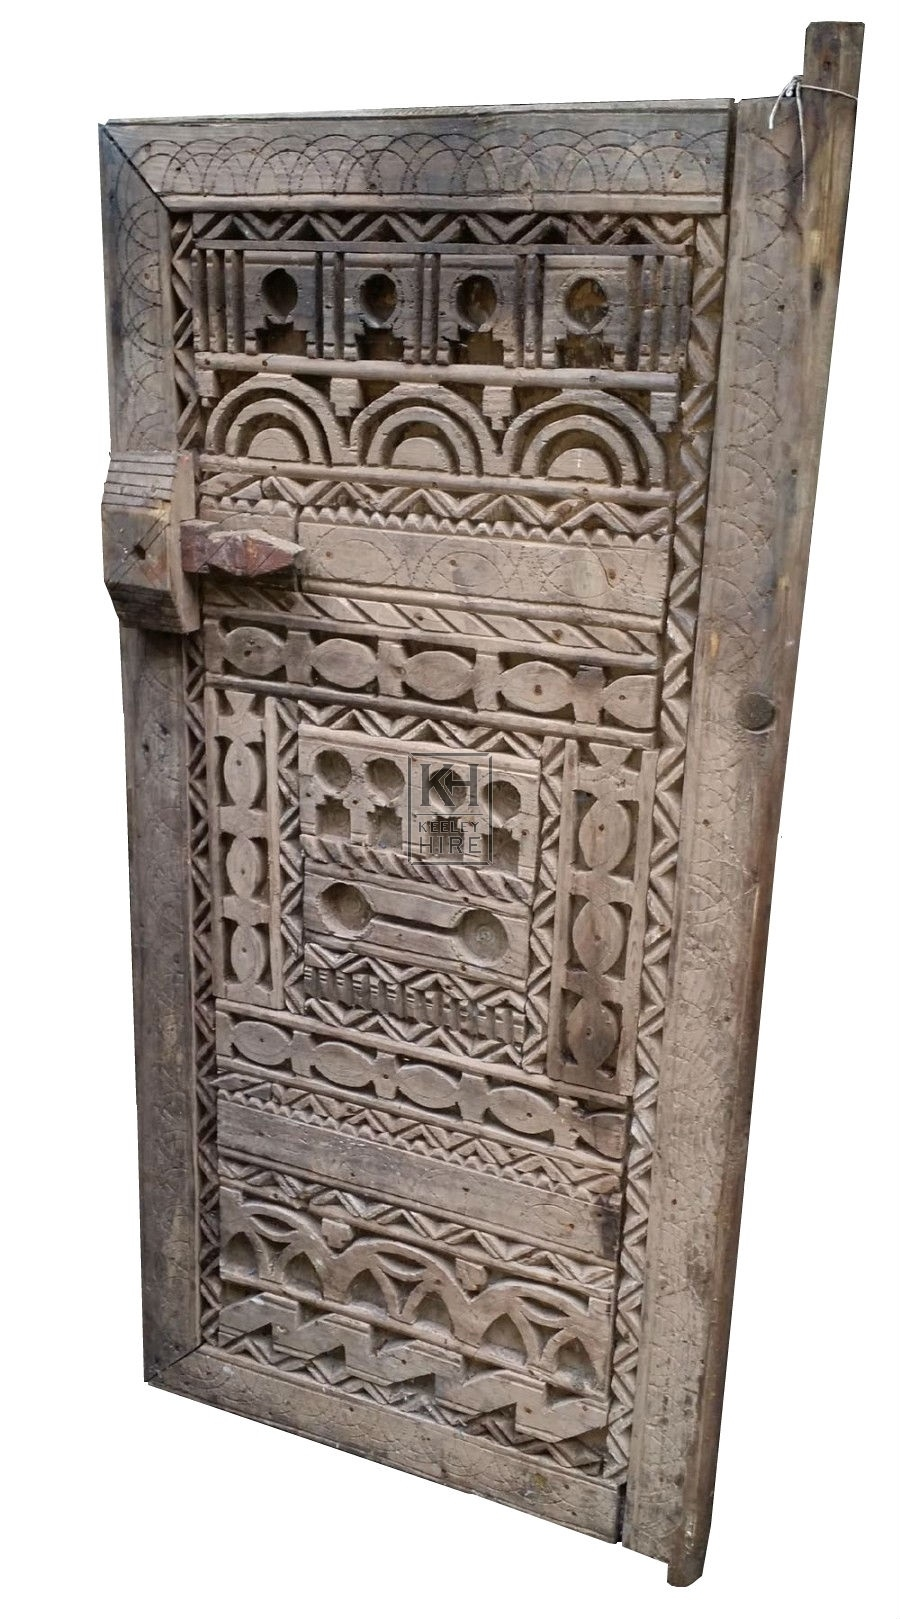 Heavily carved wood door